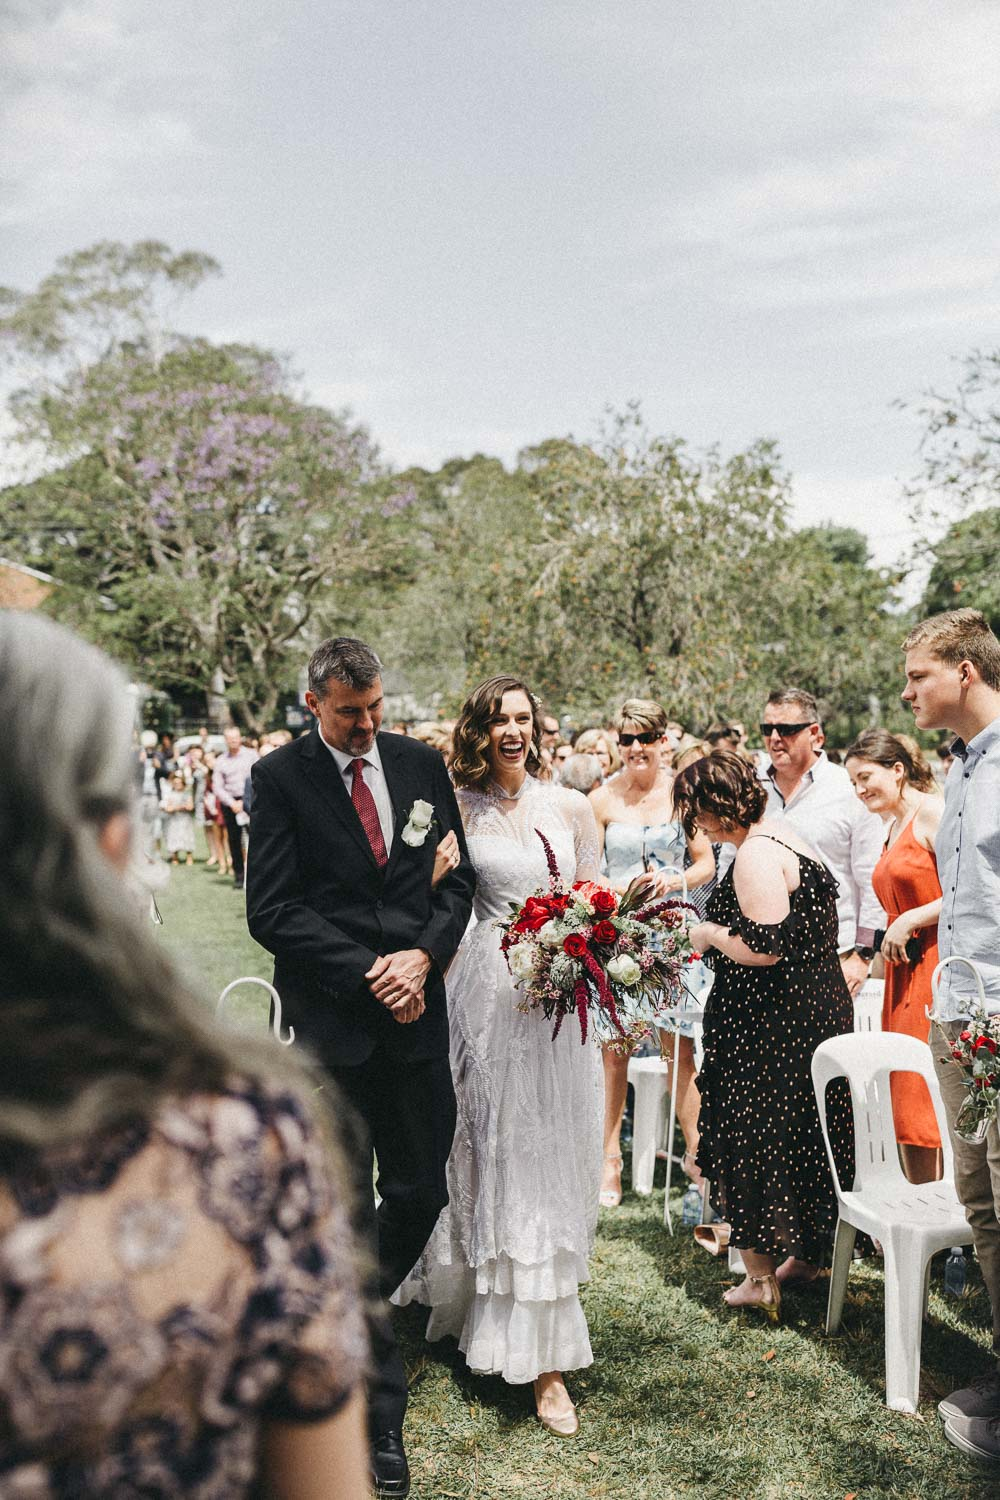 Sydney Wedding Photography | Wazza Studio 30.jpg